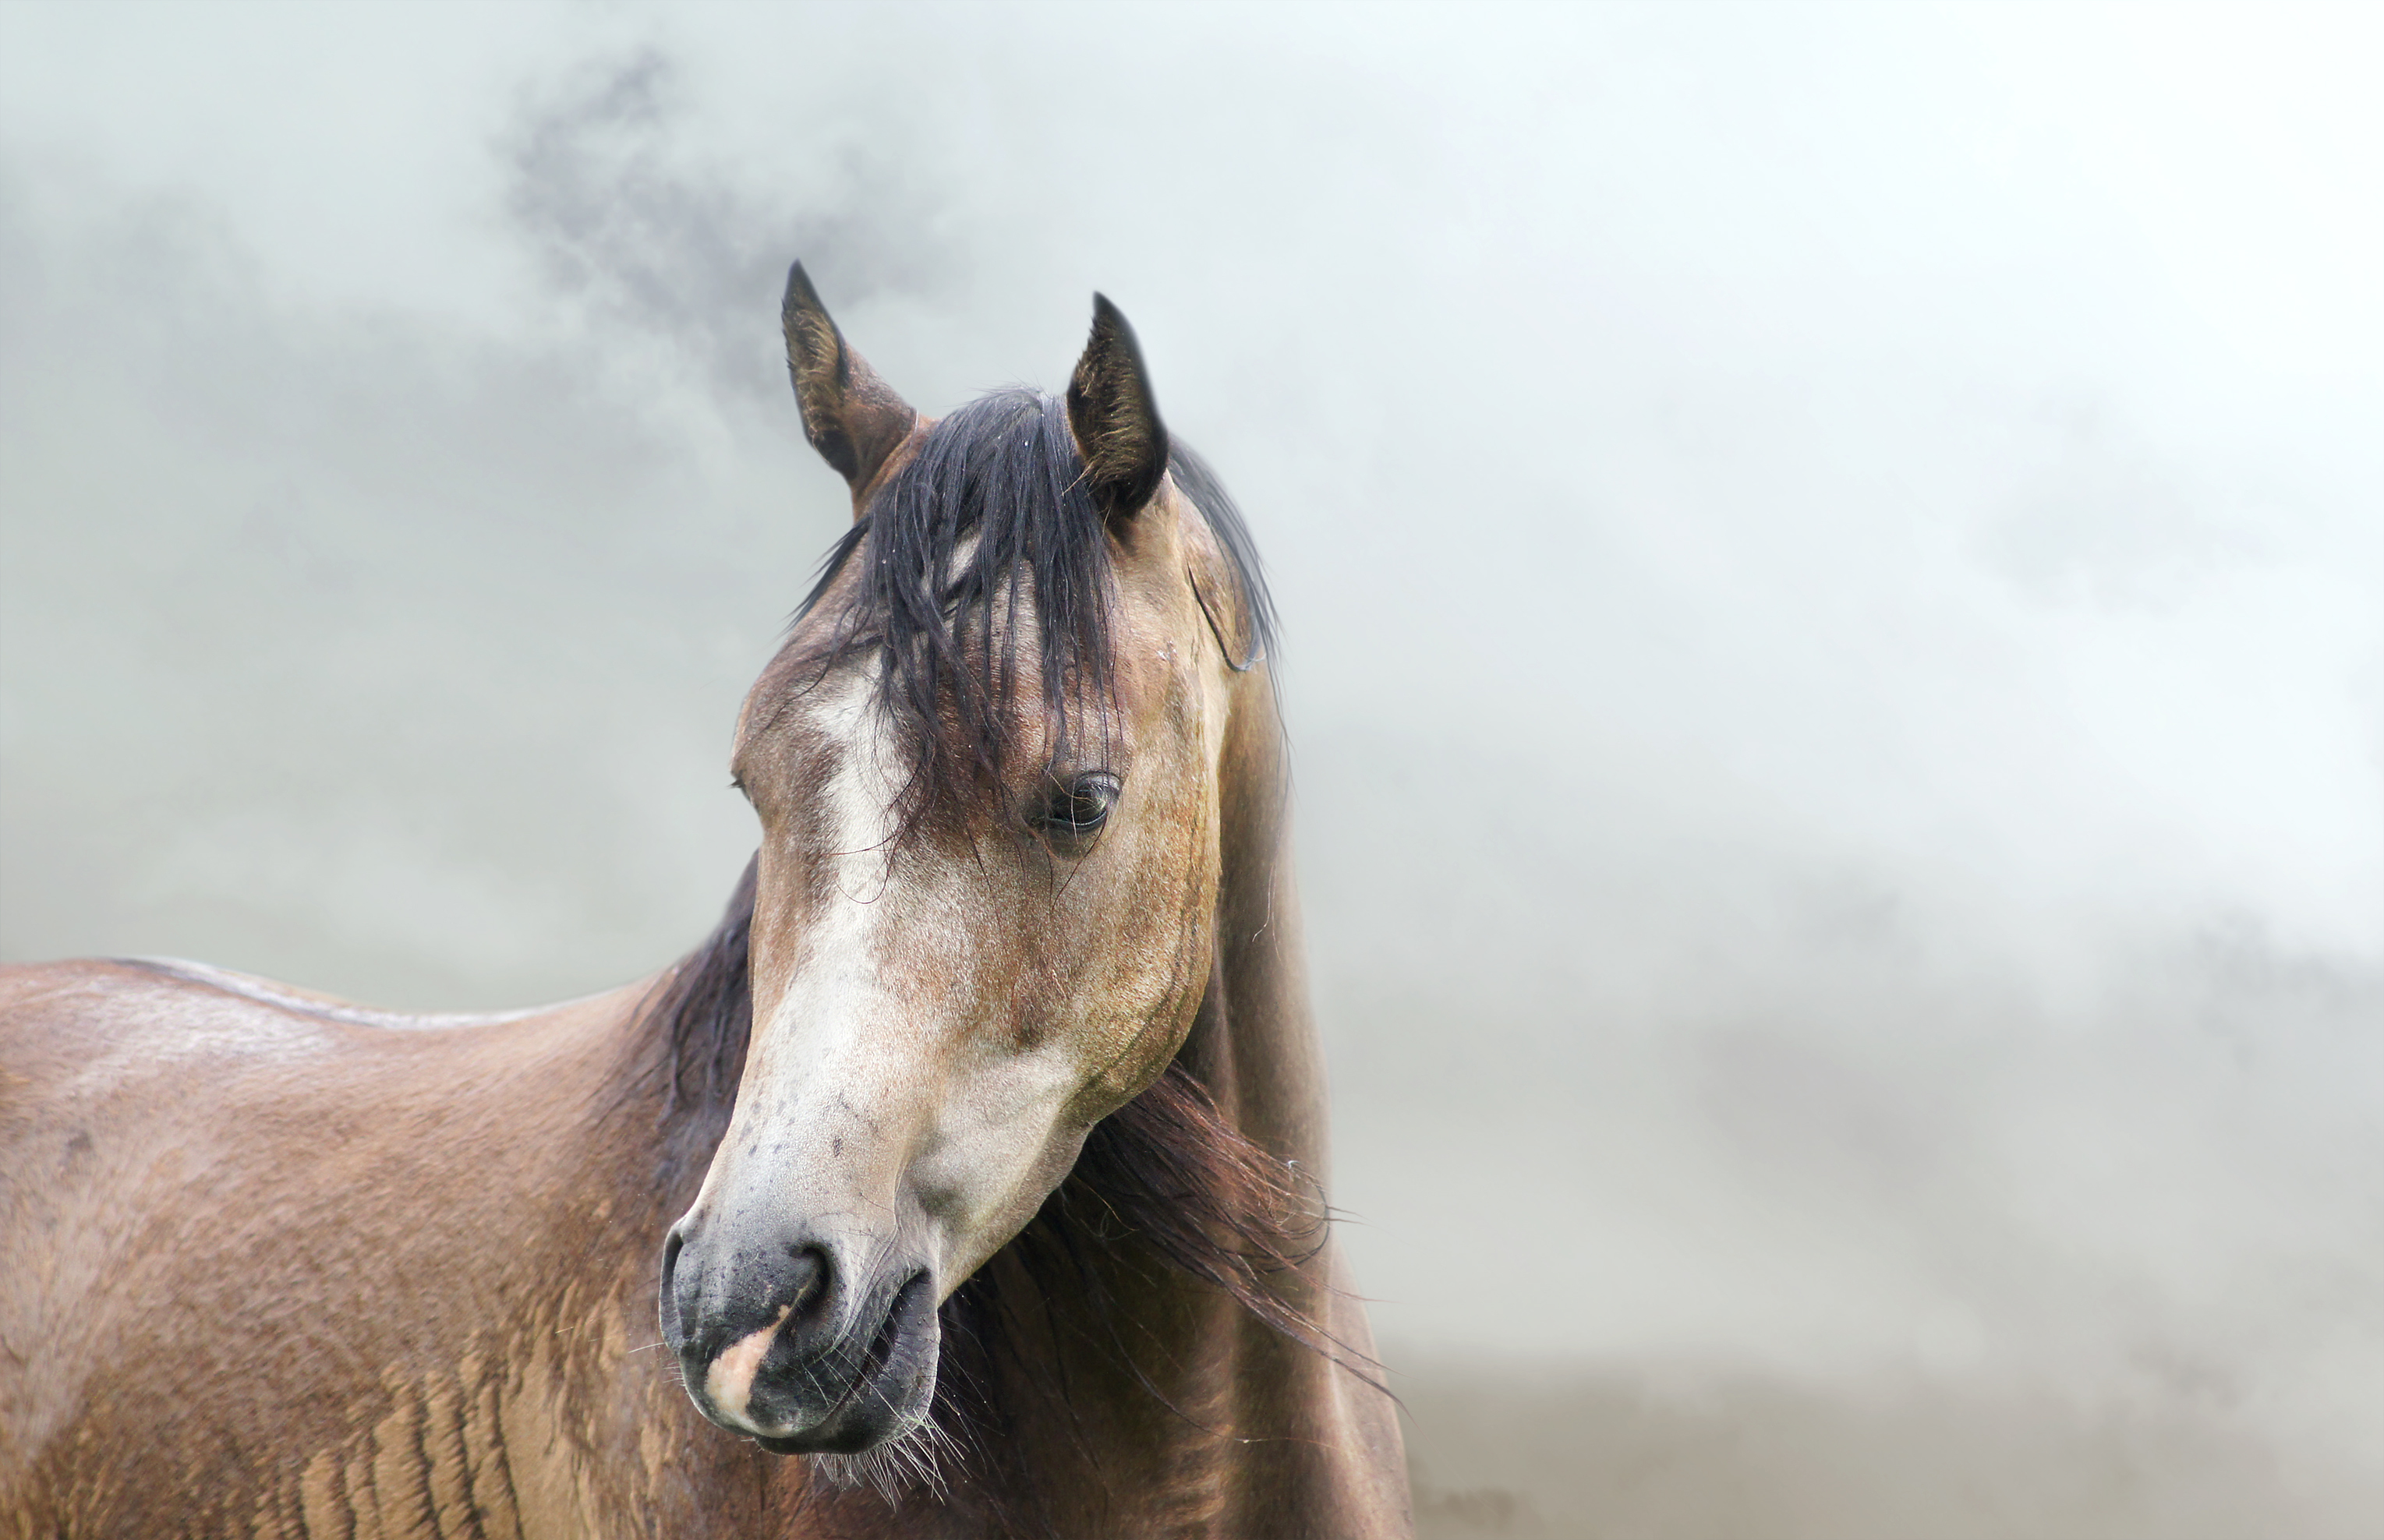 Murdoch S Blog The Dirt Wildfire Smoke And Horse Health